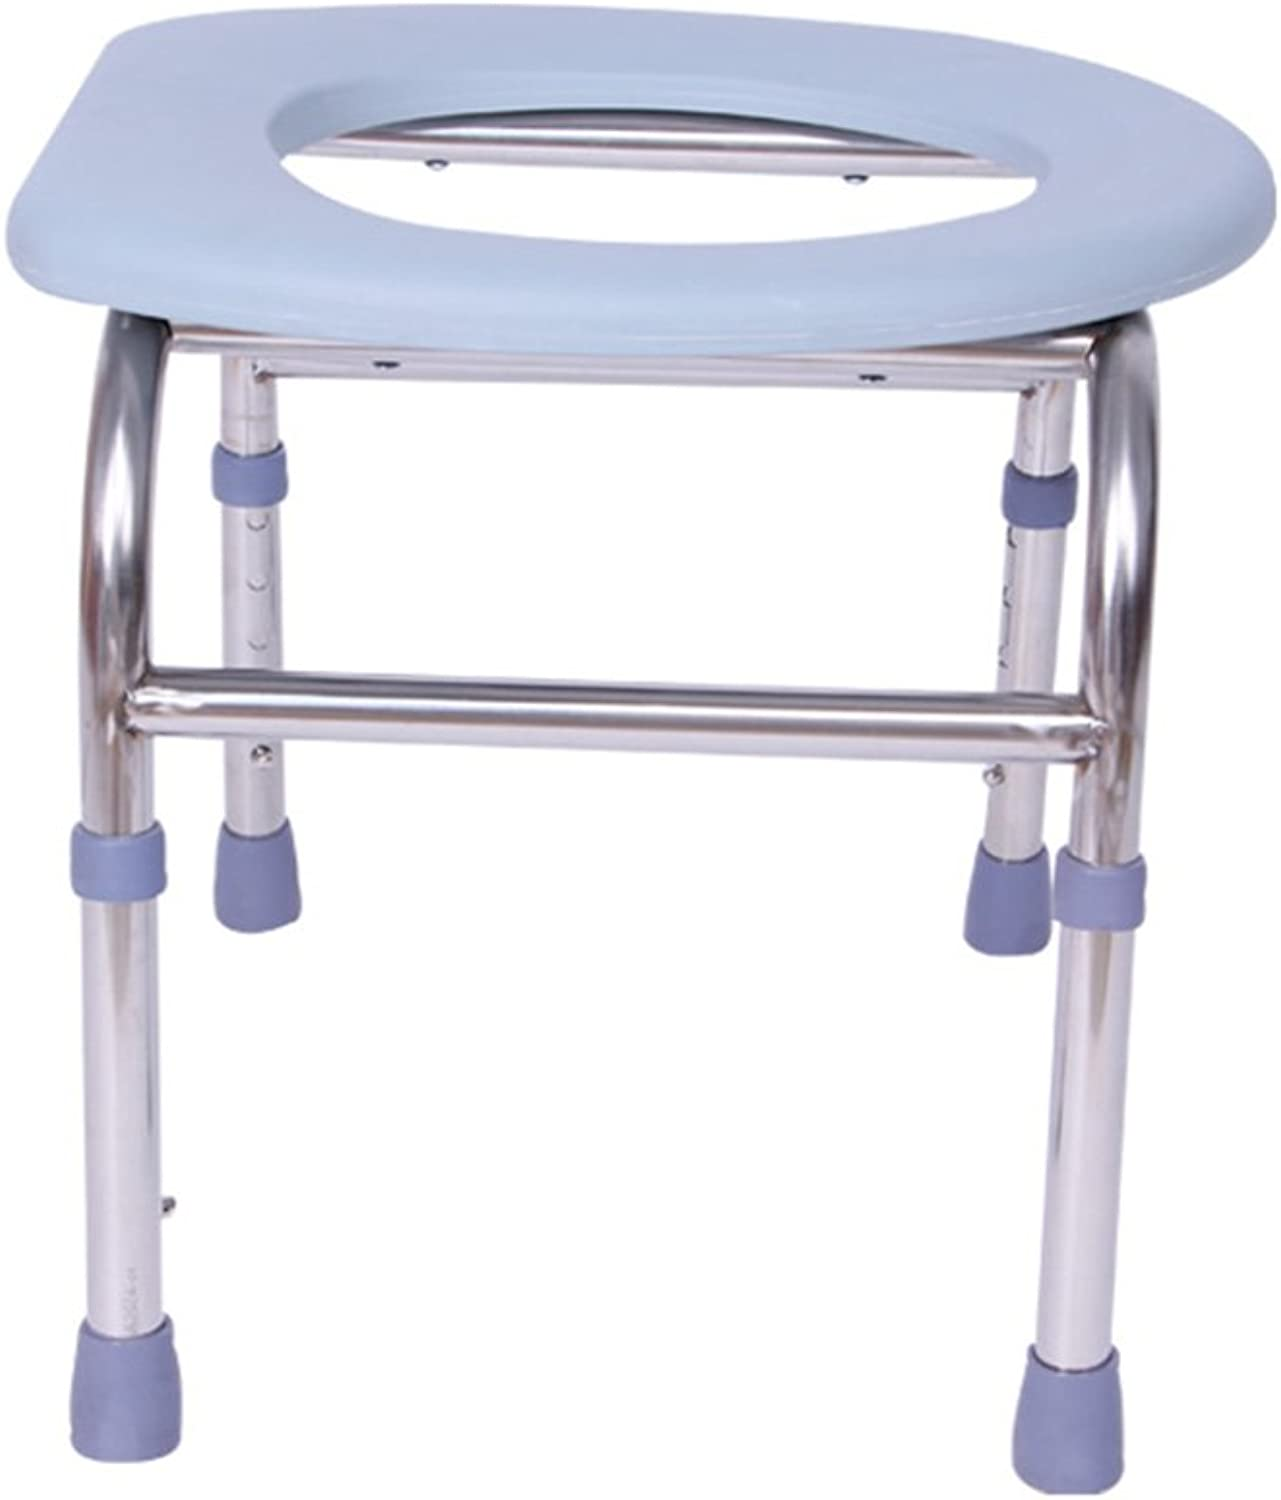 Shower Chair, Adjustable Stainless Steel Bathroom Old Man Pregnant Women Potty Chair Safety Portable